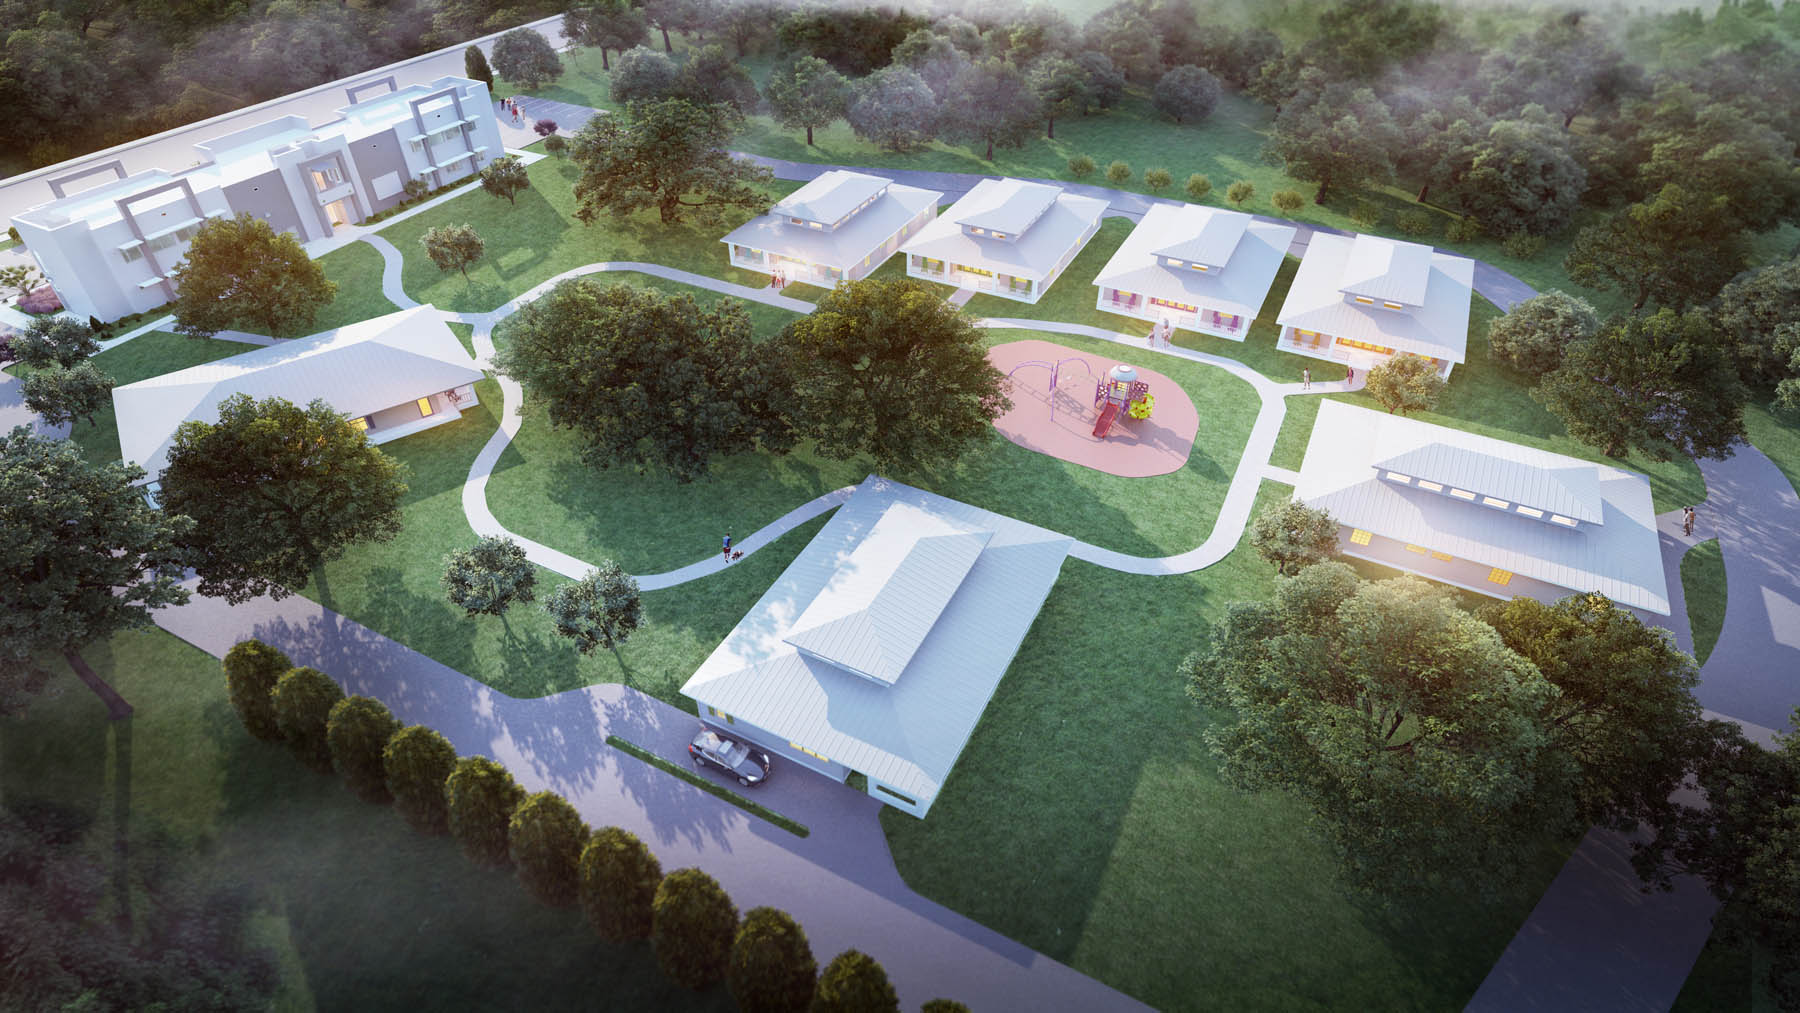 Building a Campus of Hope and Healing